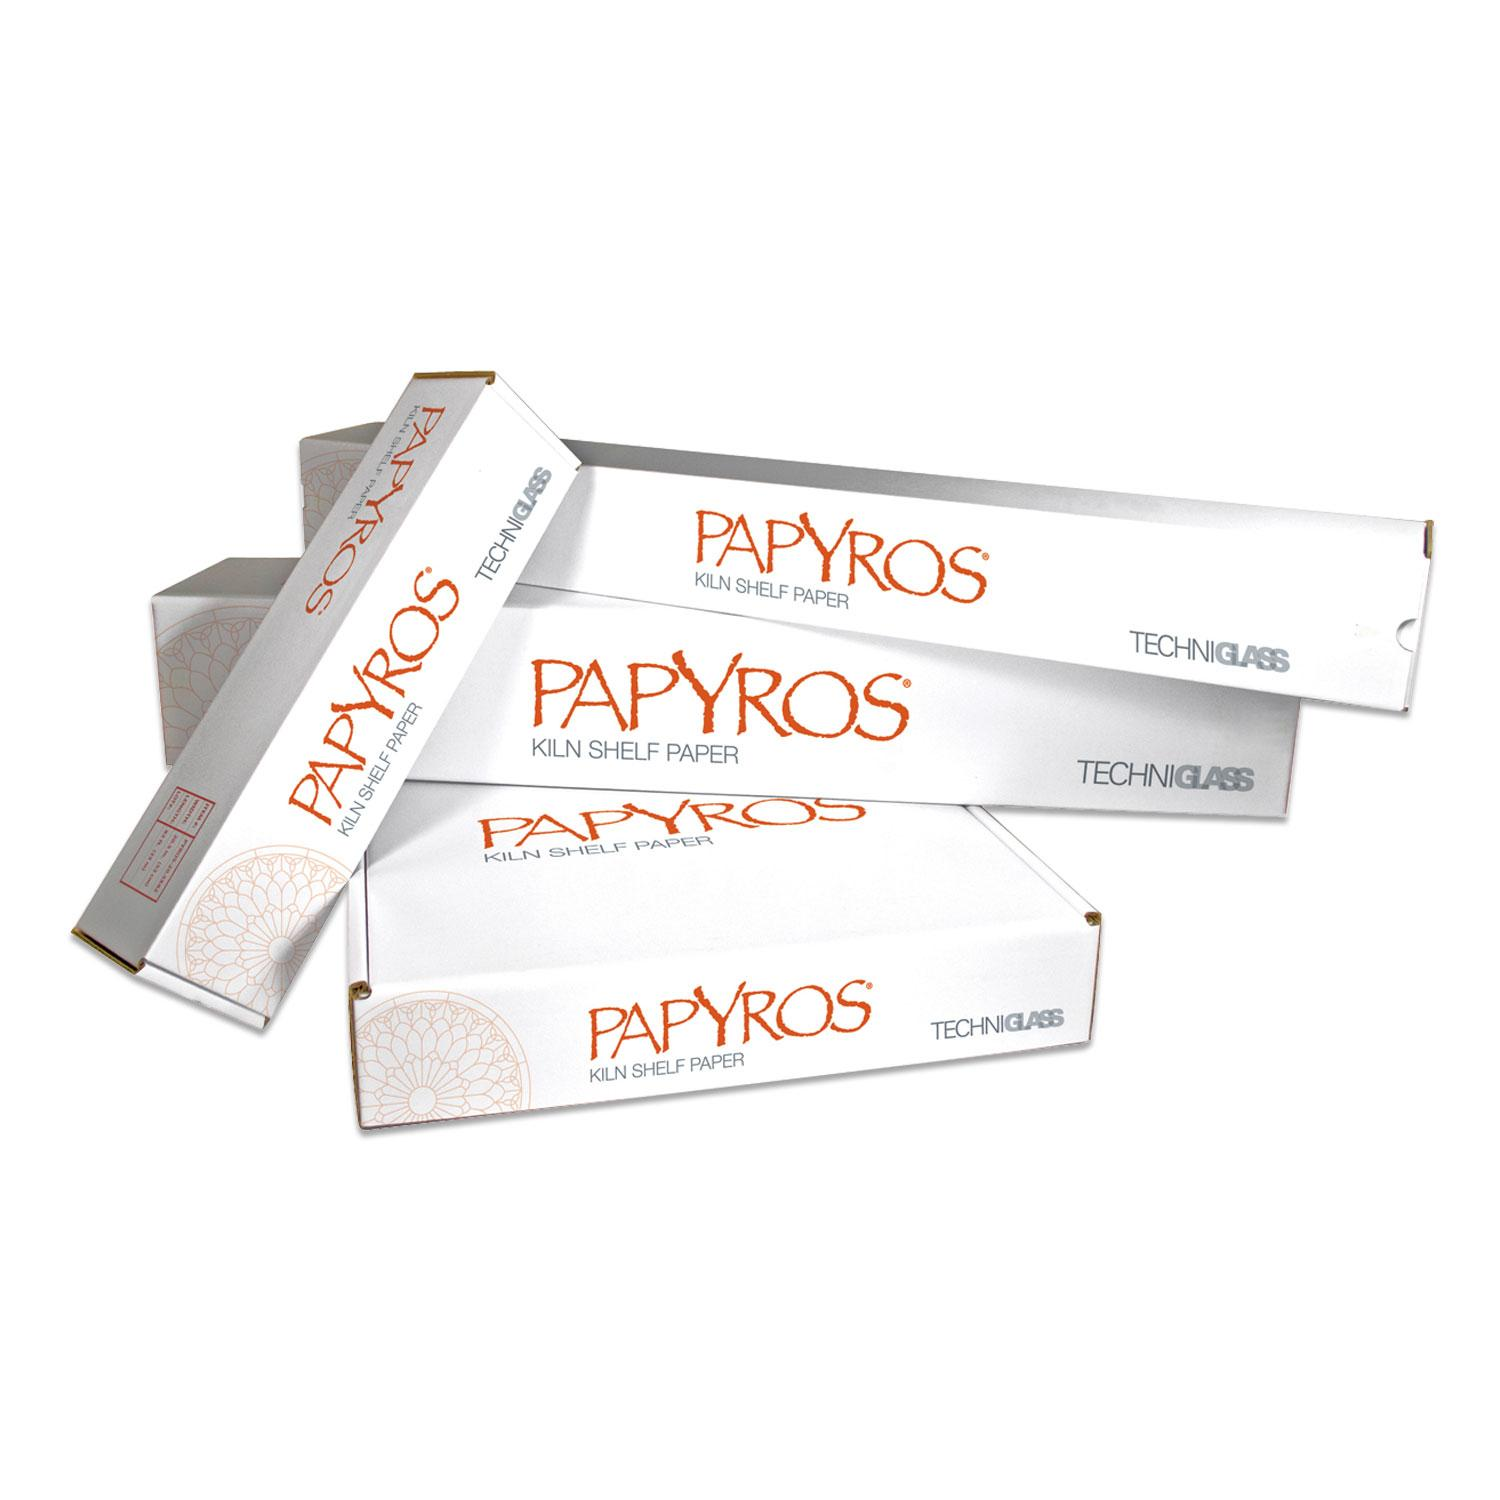 Papyros Shelf Paper - 20-1/2 x 20-1/2 Sheet